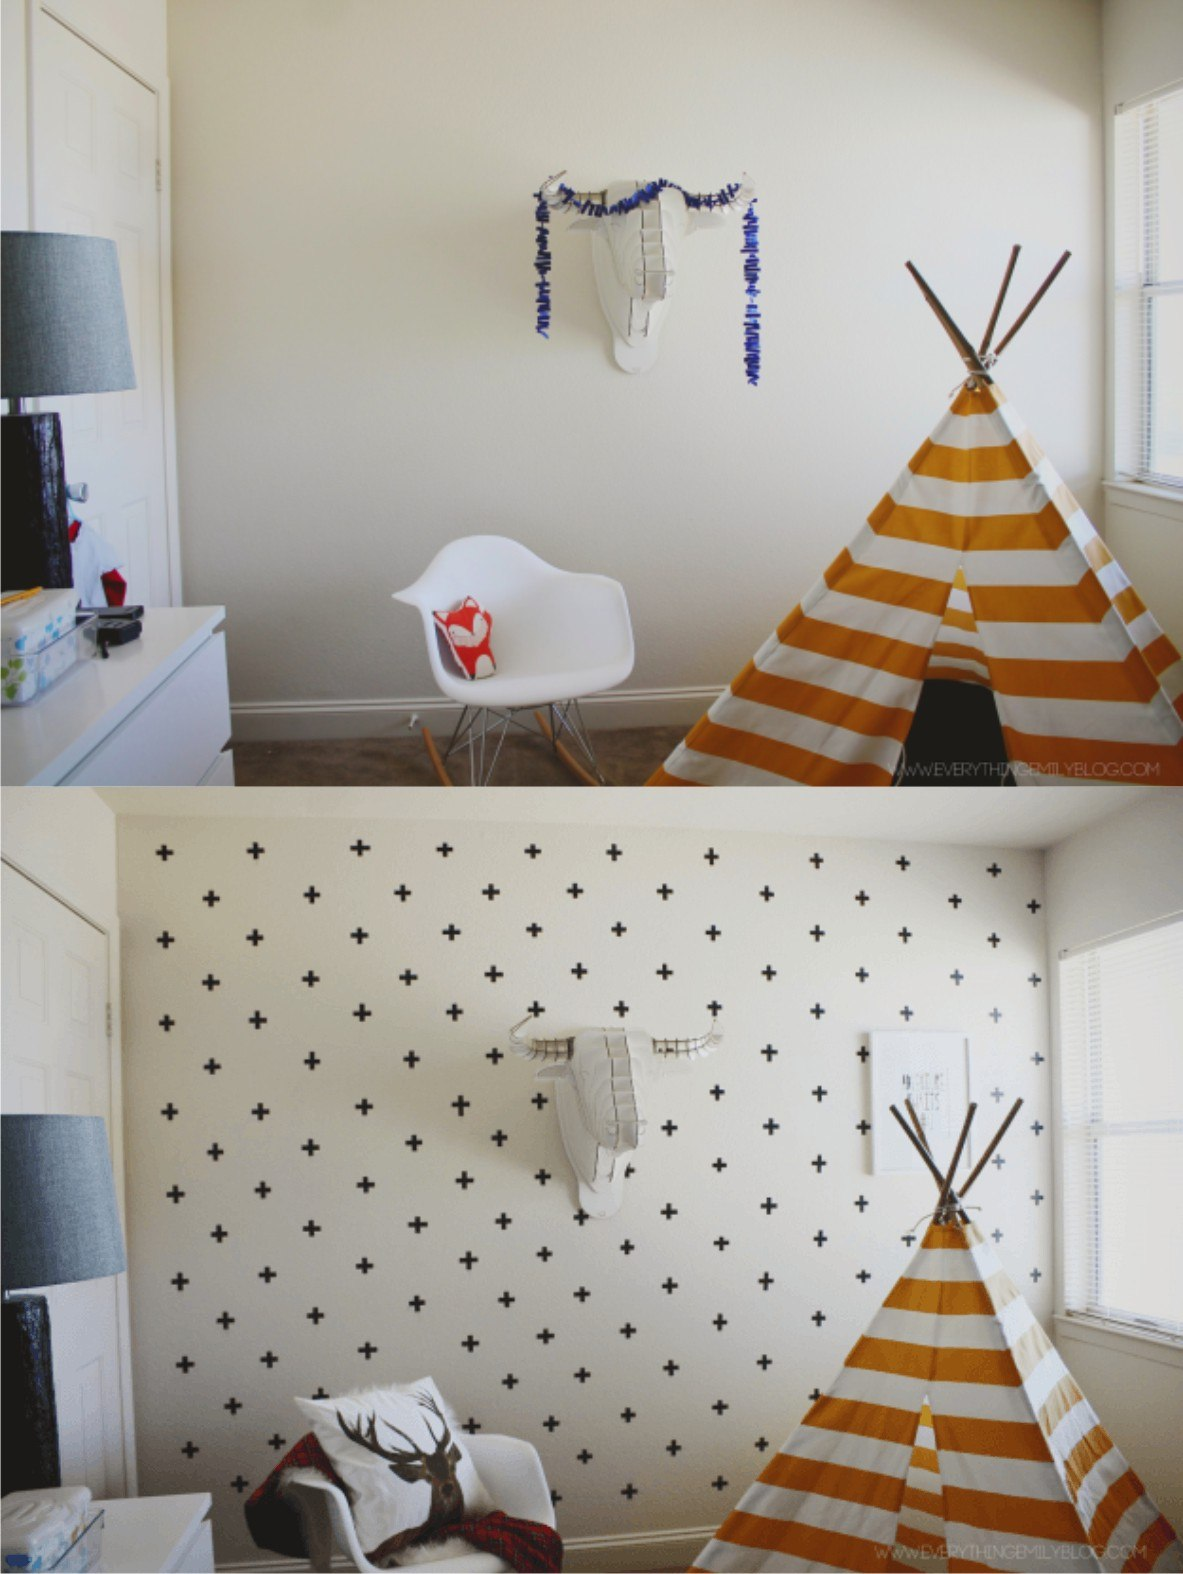 Ingenioso wallart con washi tape